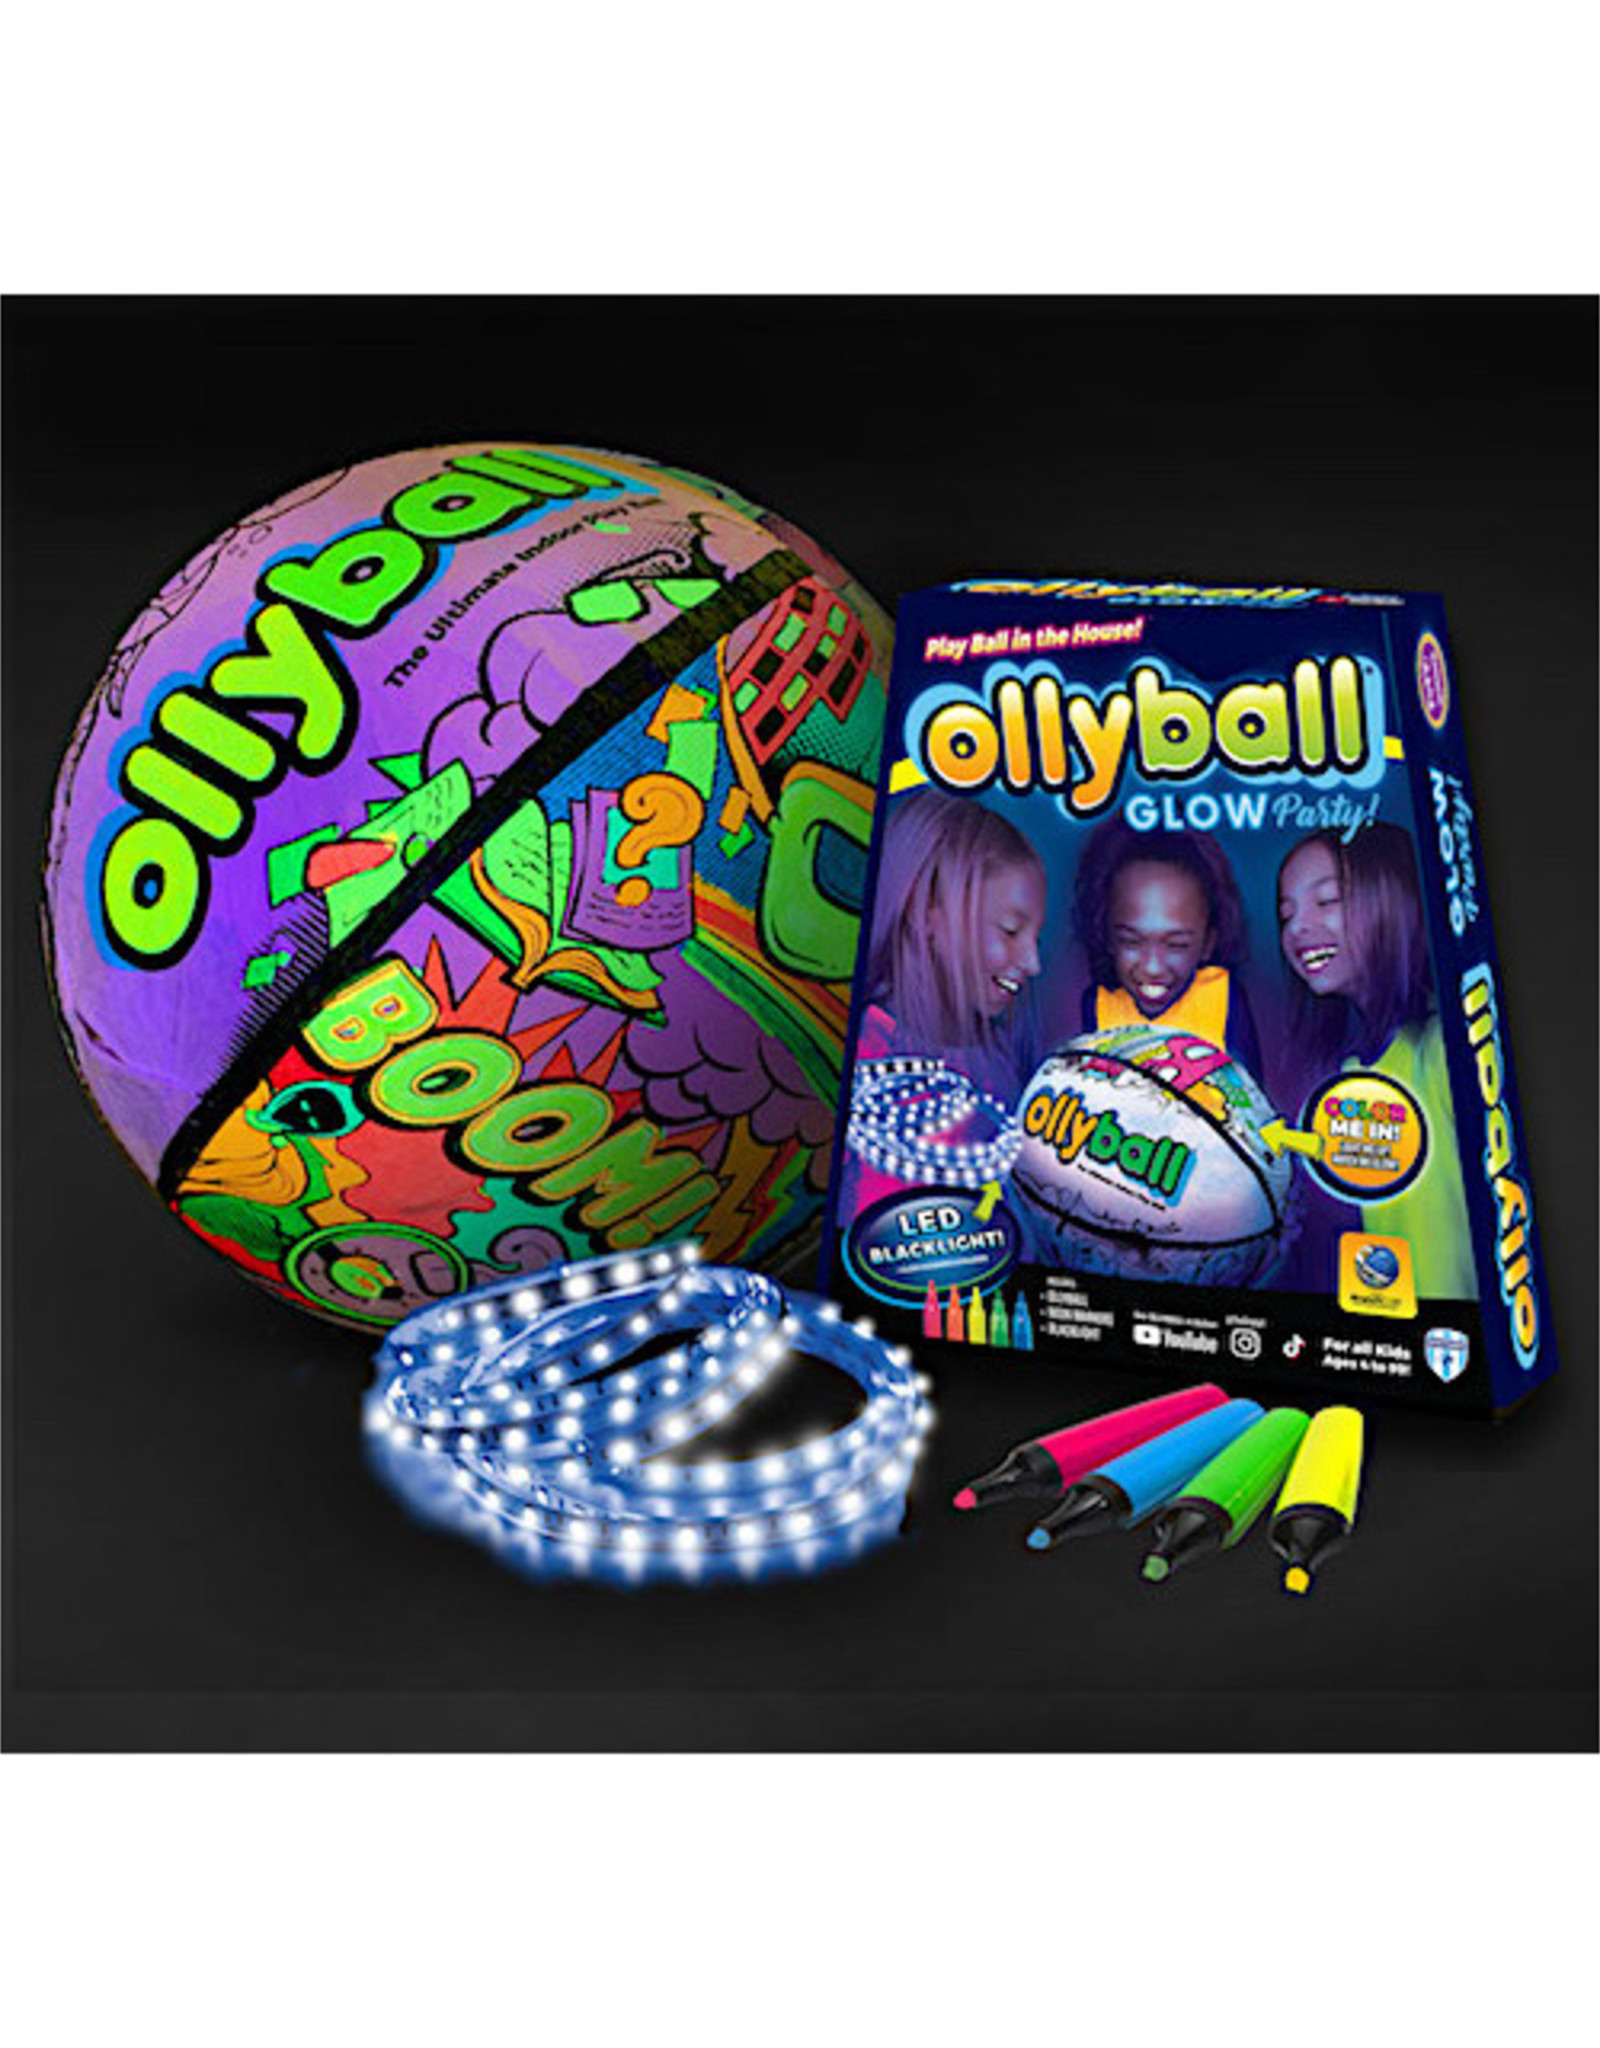 Ollyball Glow Party